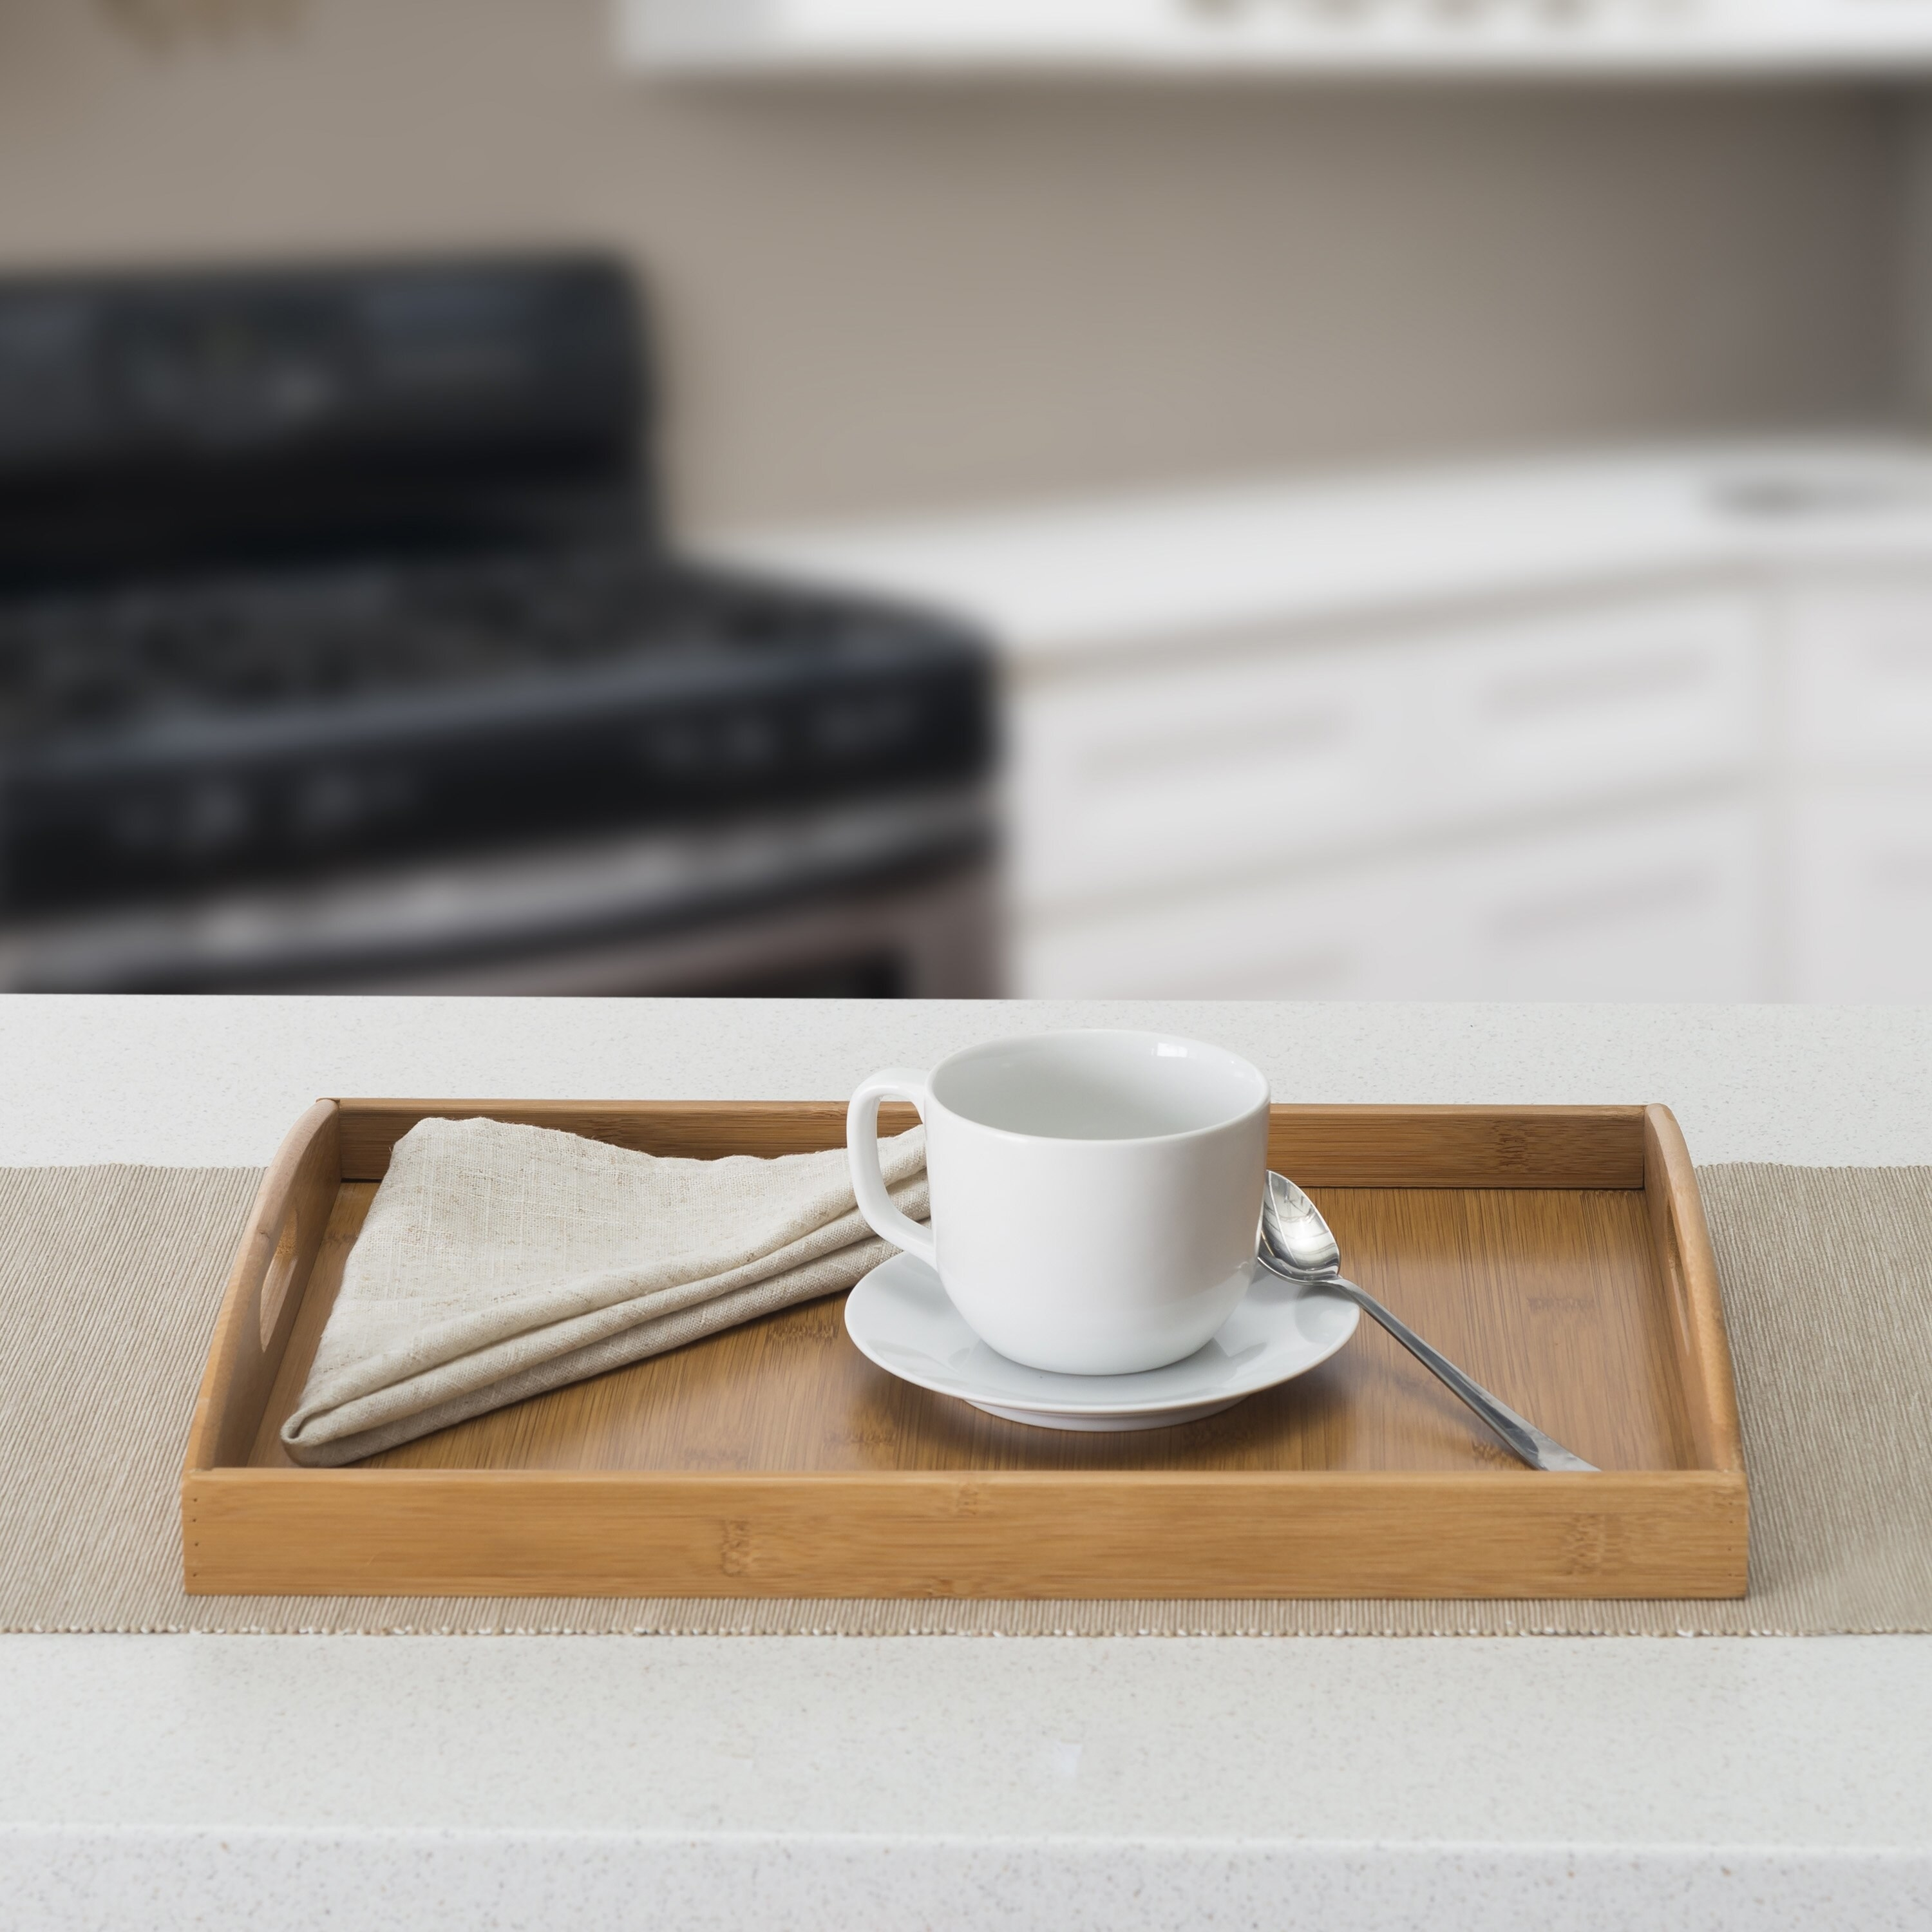 The serving tray with a coffee cup and napkin on top